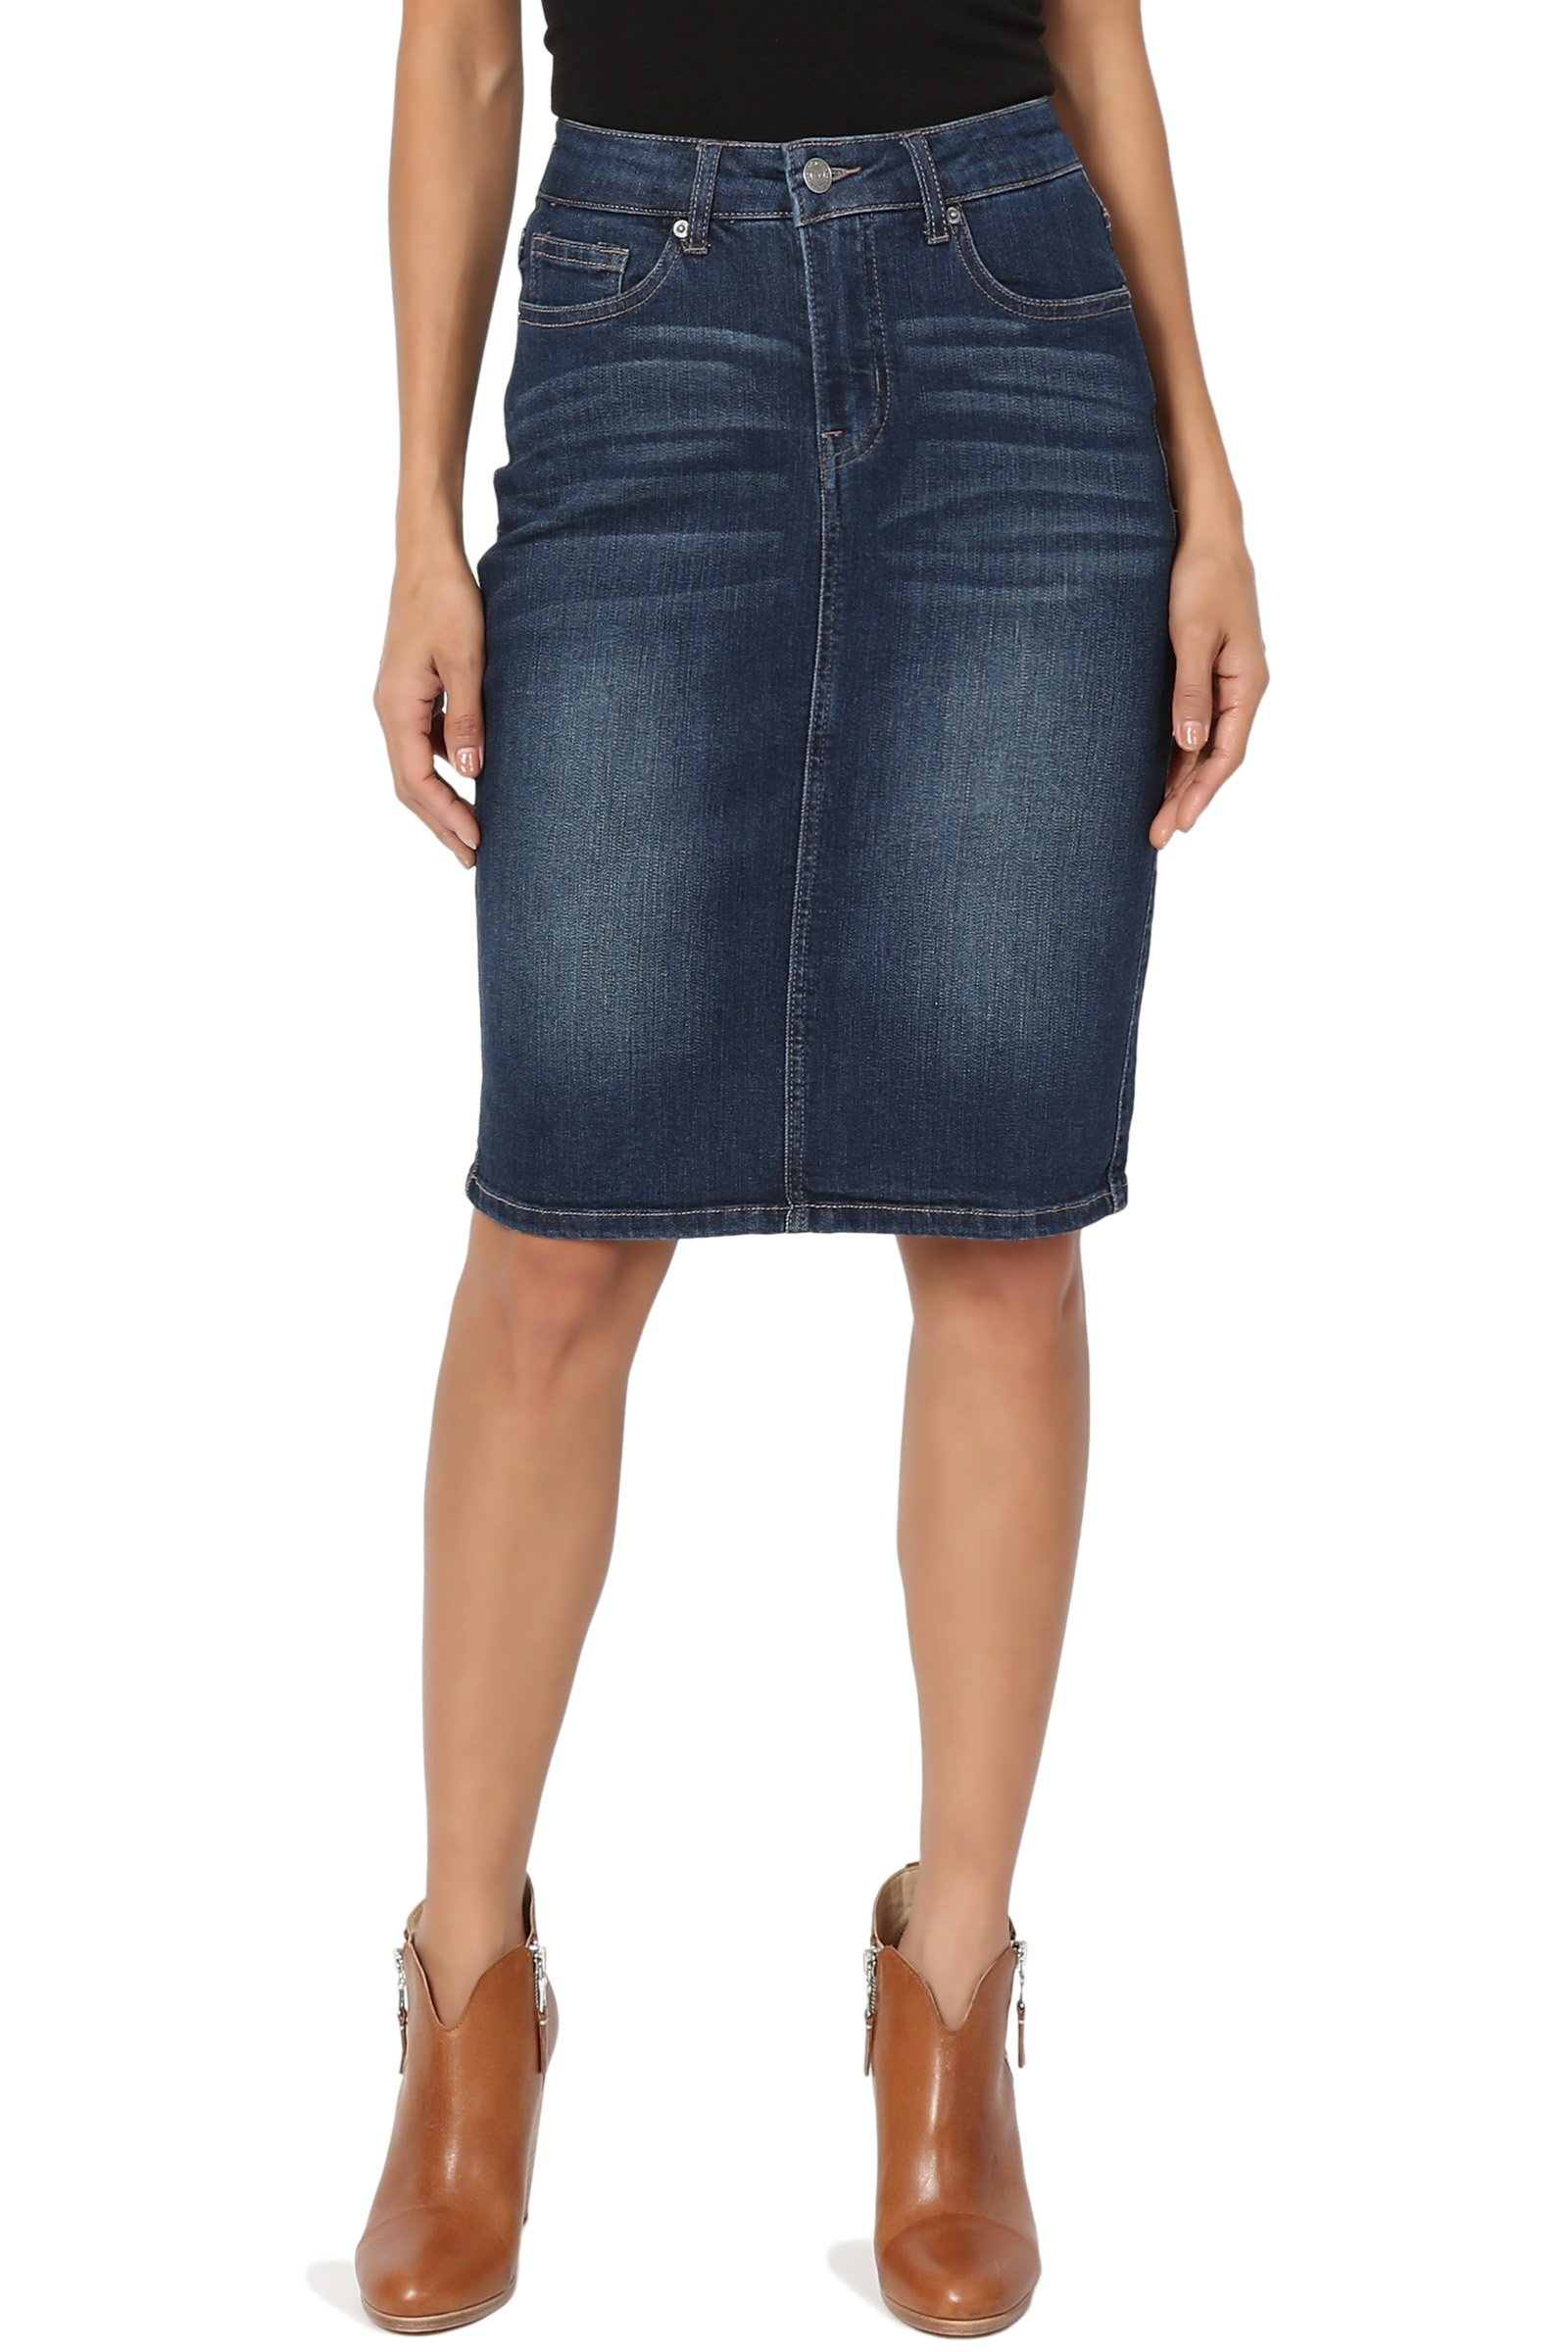 TheMogan Women's Vintage Washed Blue Jean Pencil Midi Soft Denim Skirt Dark S